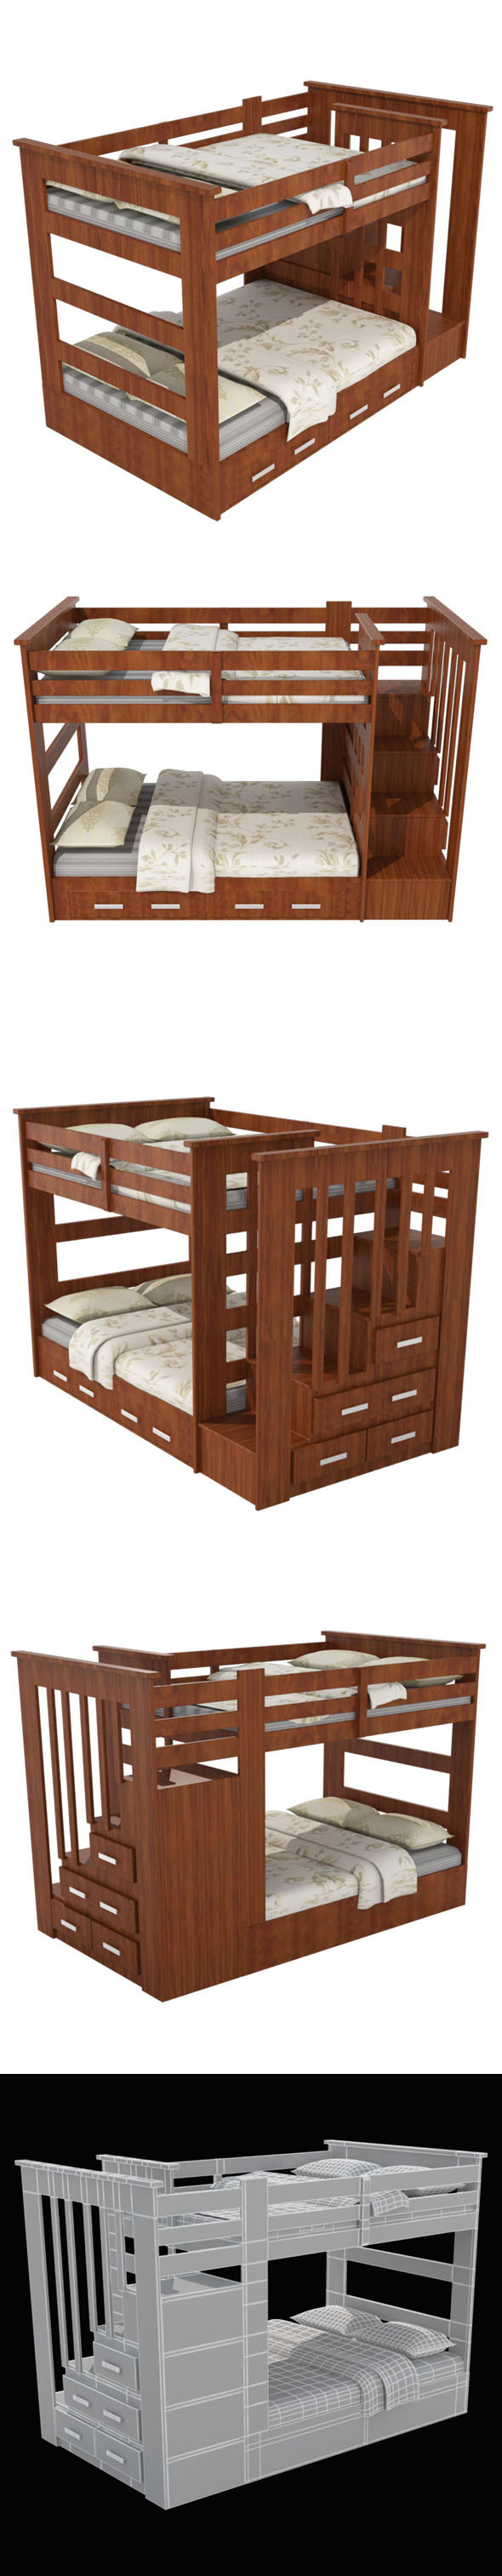 Child Bed_1 - 3DOcean Item for Sale